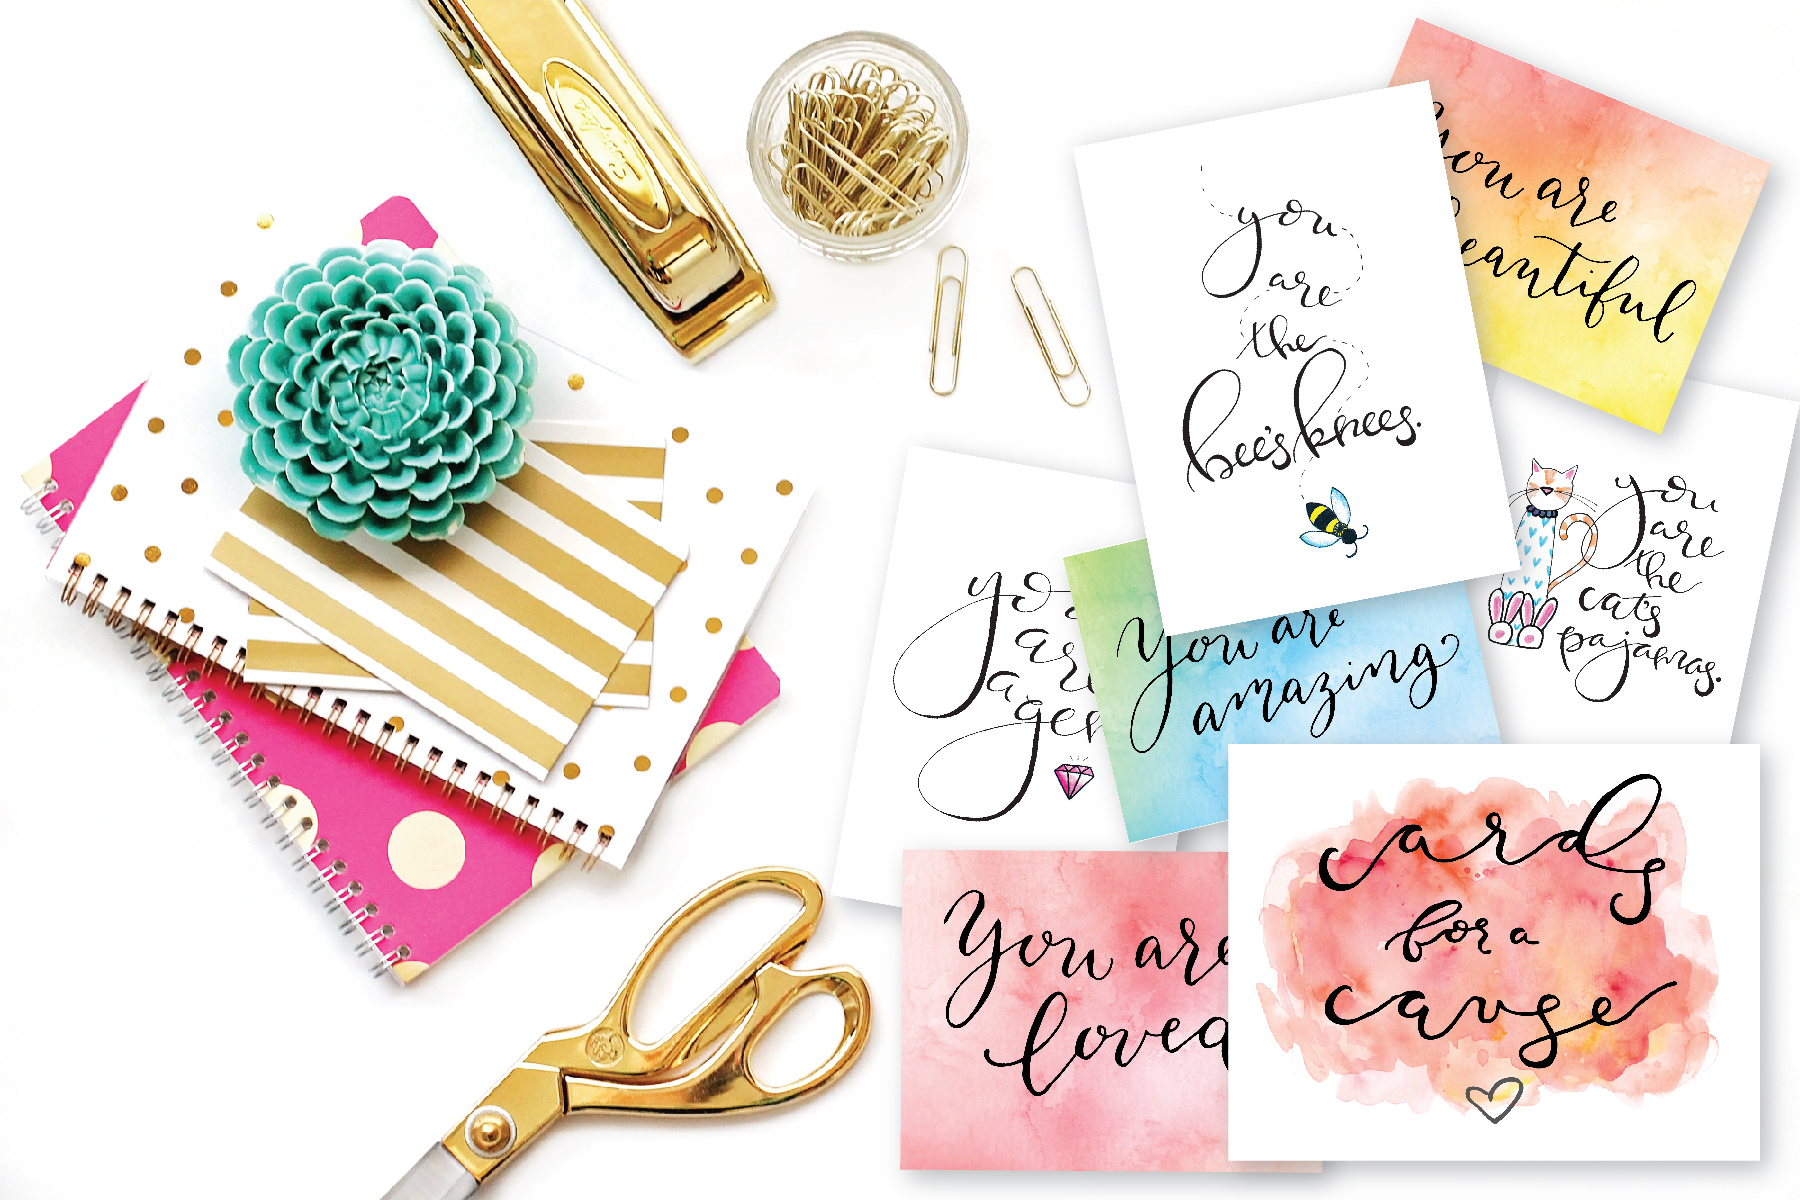 notecards for charity watercolor.jpg